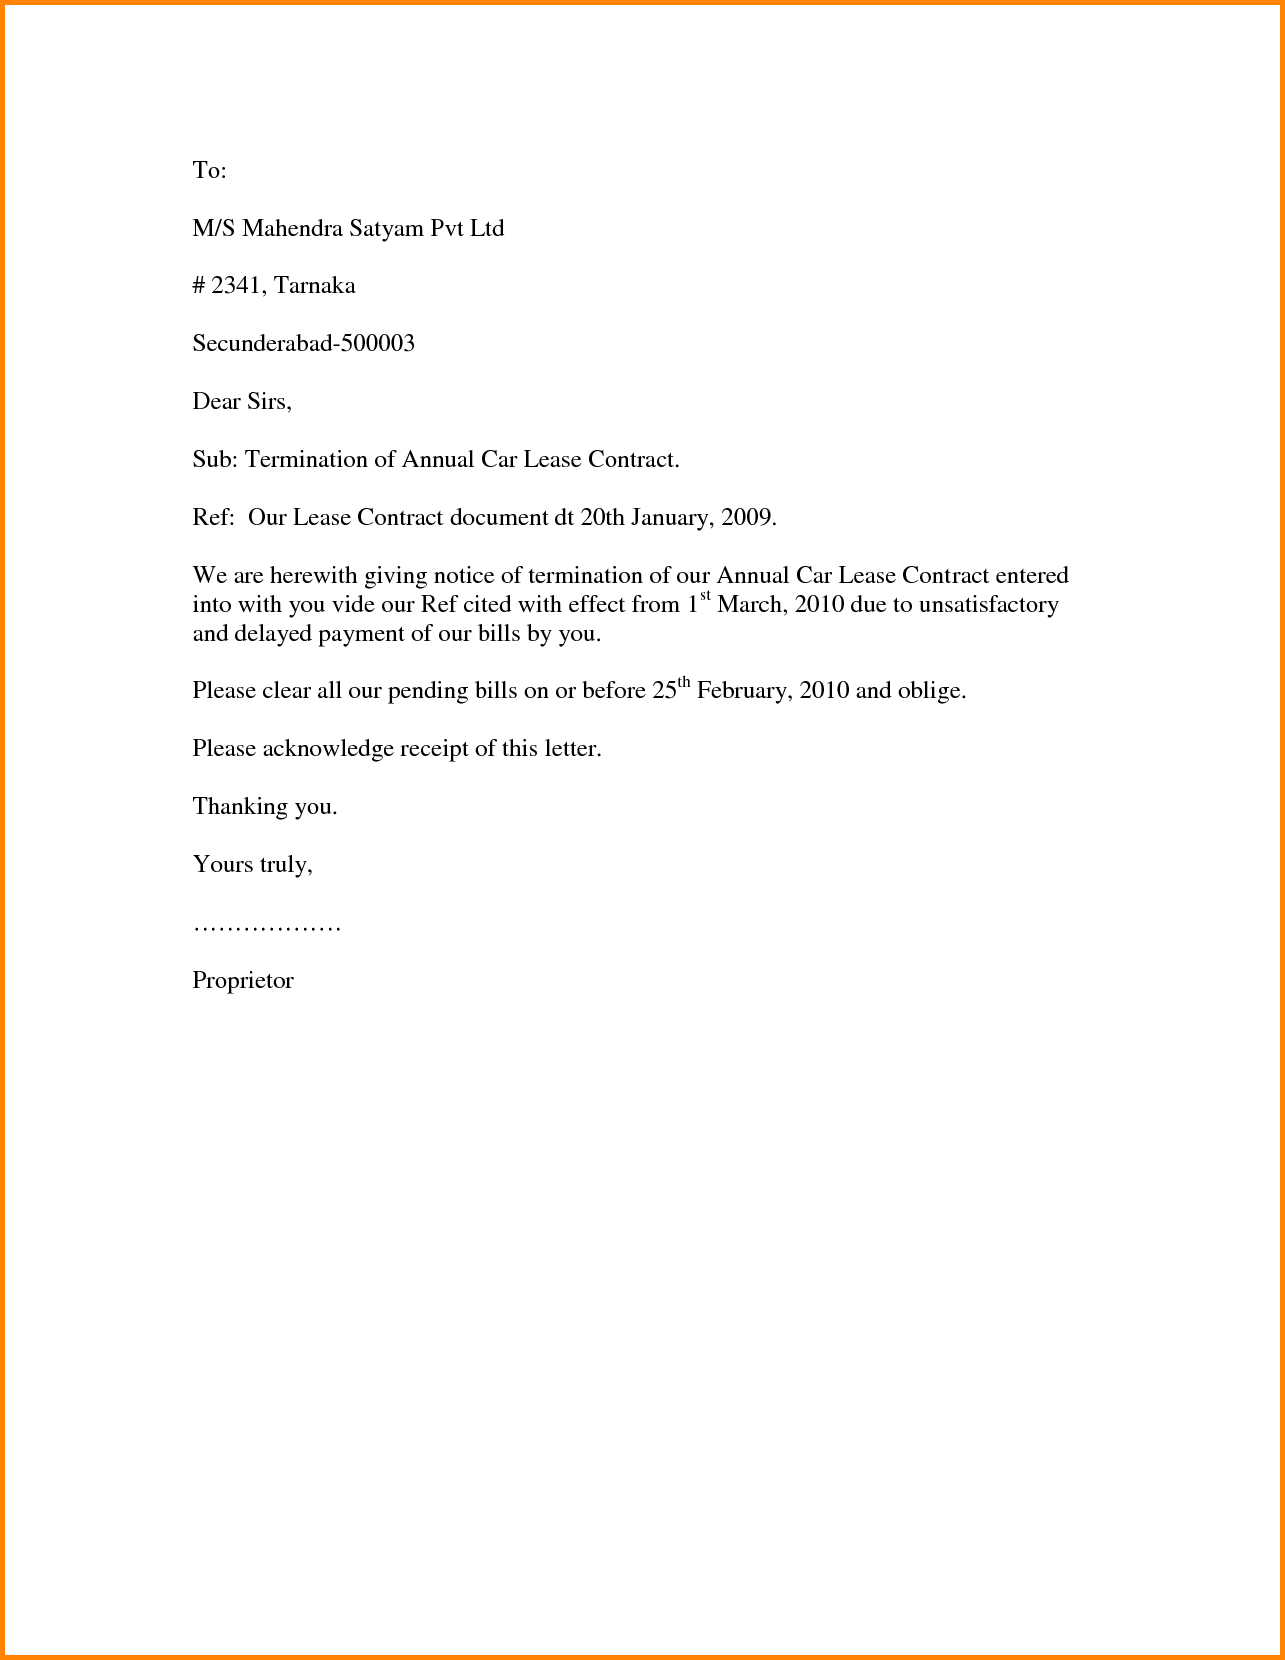 Contract Cancellation Letter Template Free - How to End Letters How to End A Resignation Letter Fancy Resume How